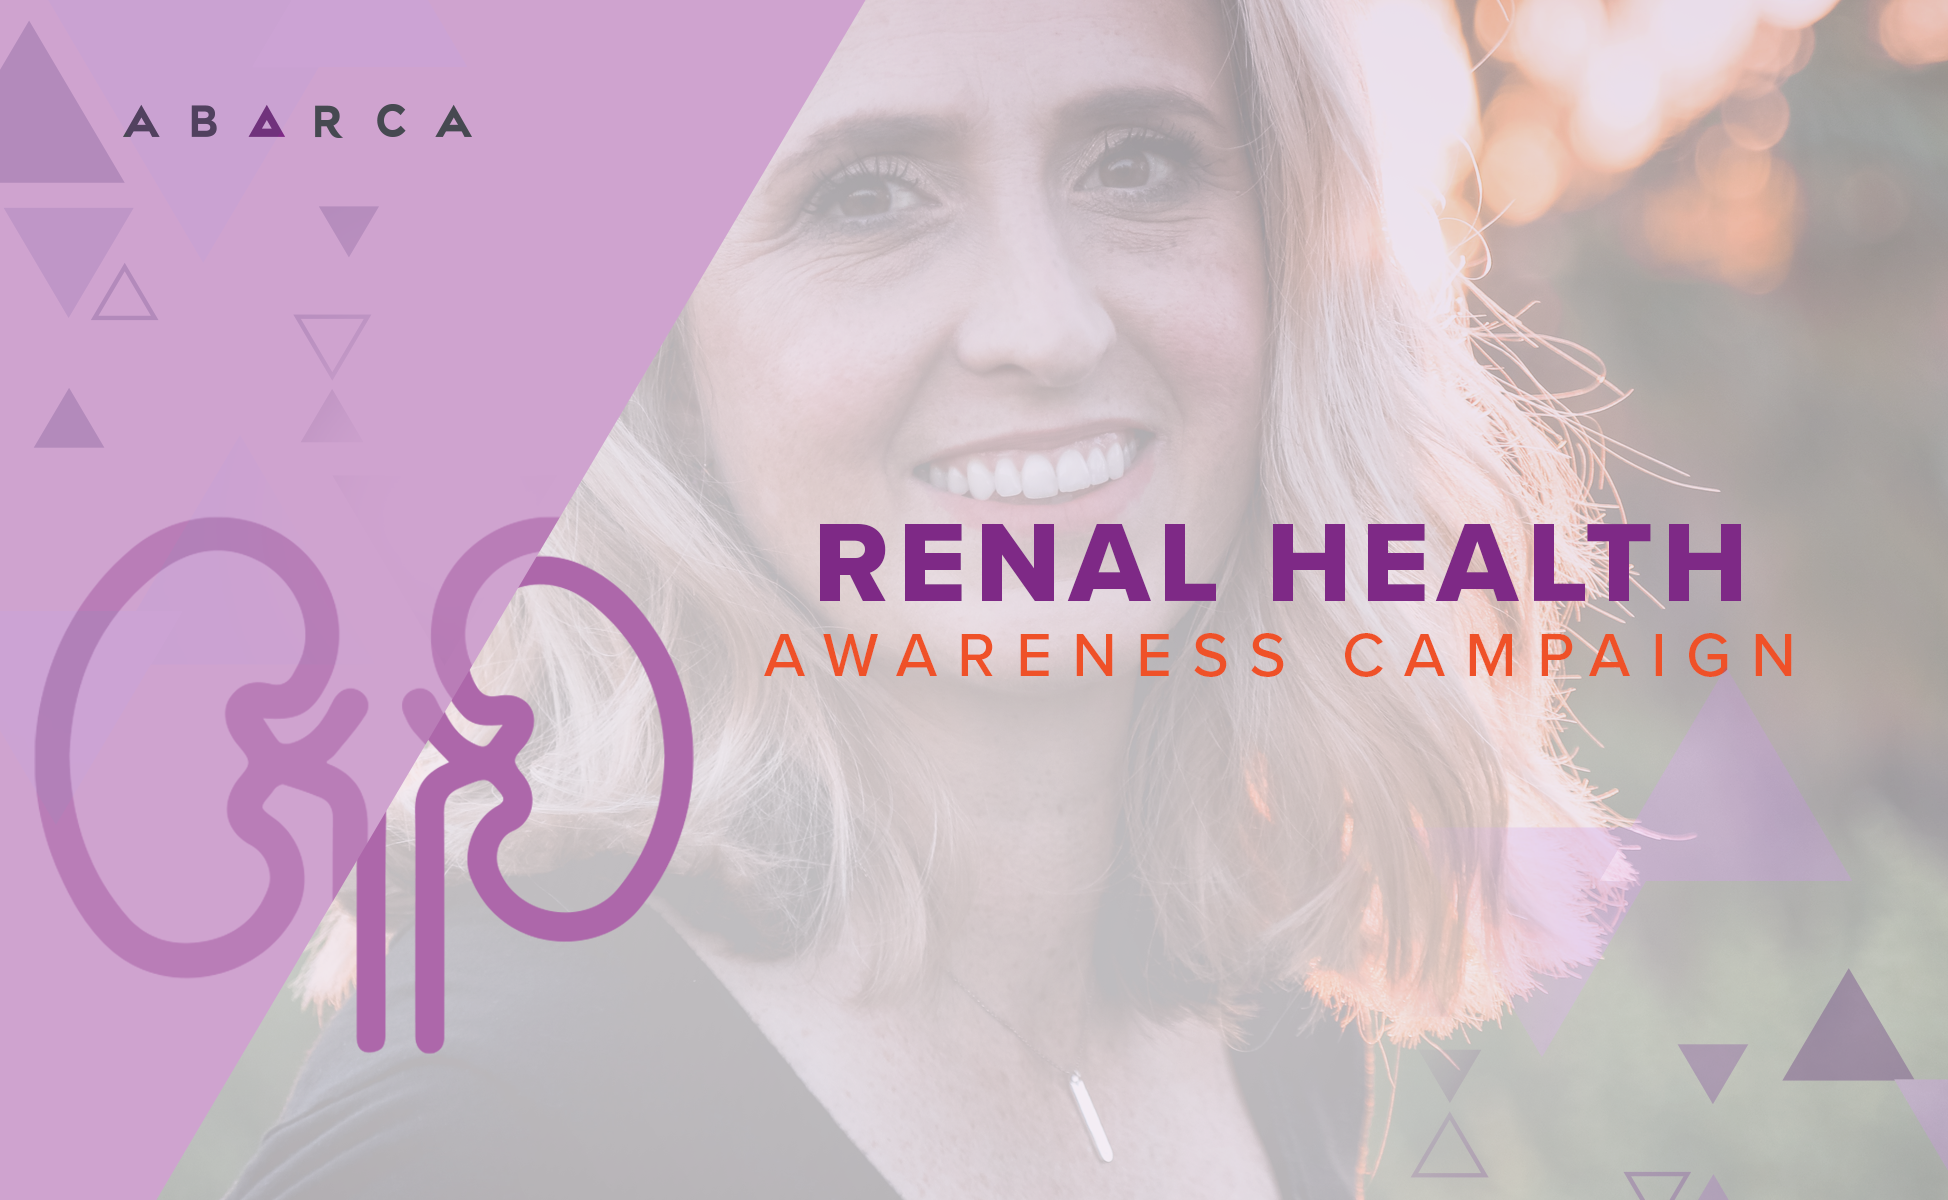 Abarca's Renal Health Awareness Campaign as part of the Better Care Community Program